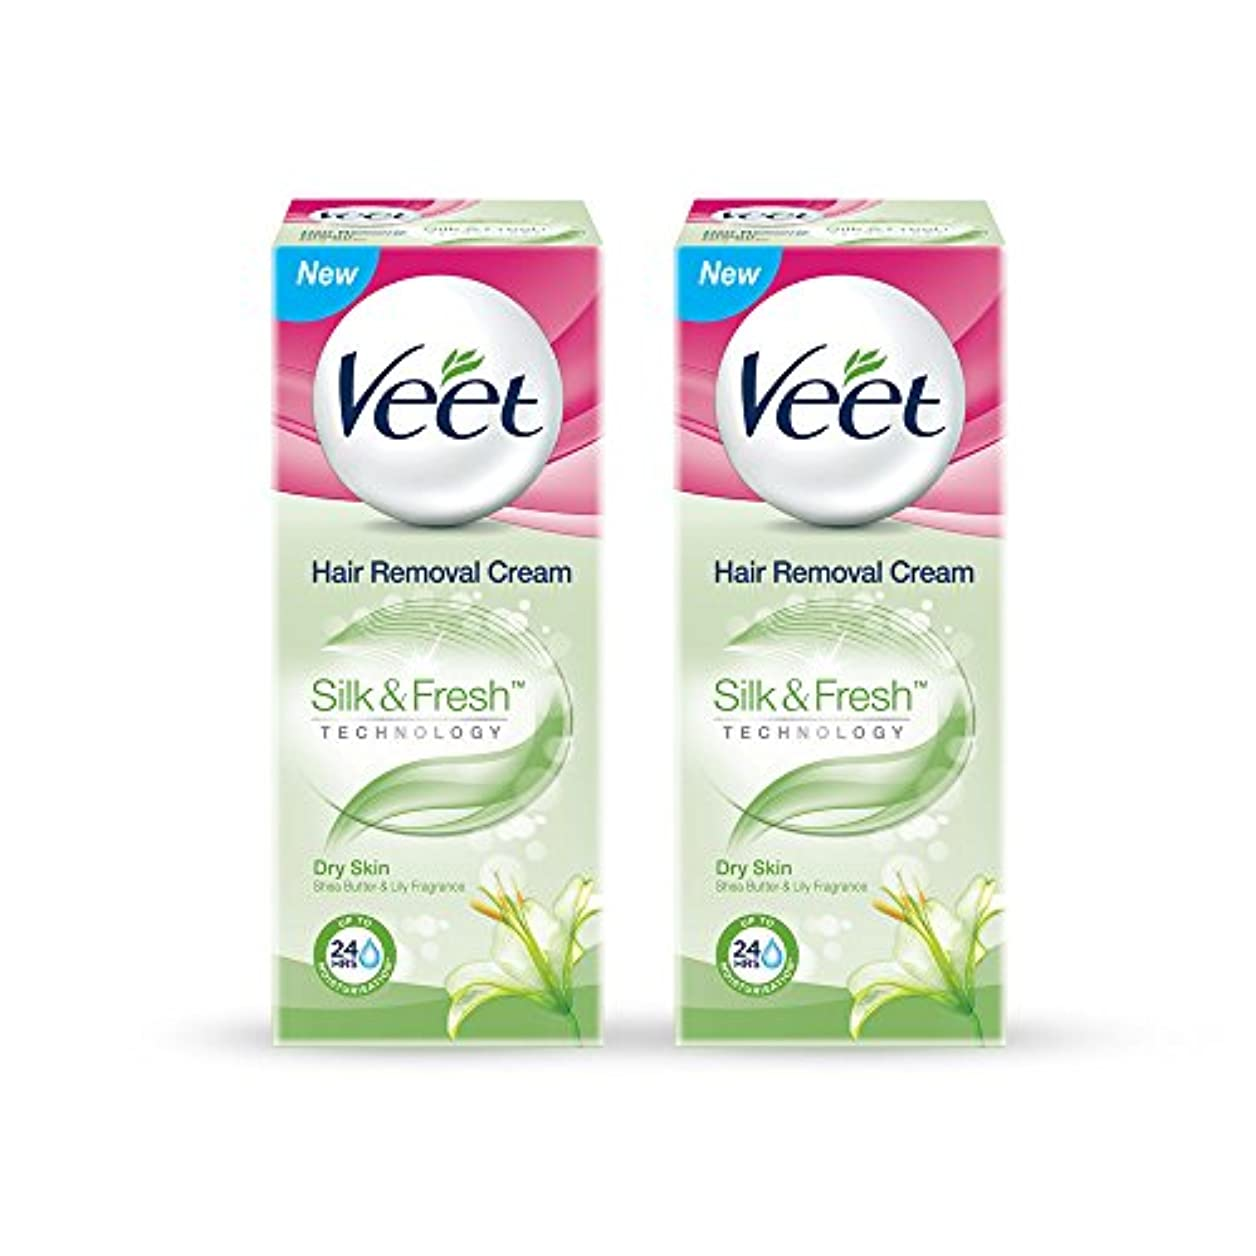 公そうでなければリラックスしたVeet Hair Removal Gel Cream for Dry Skin with Shea Butter & Lily Fragrance 25 g (Pack of 2)